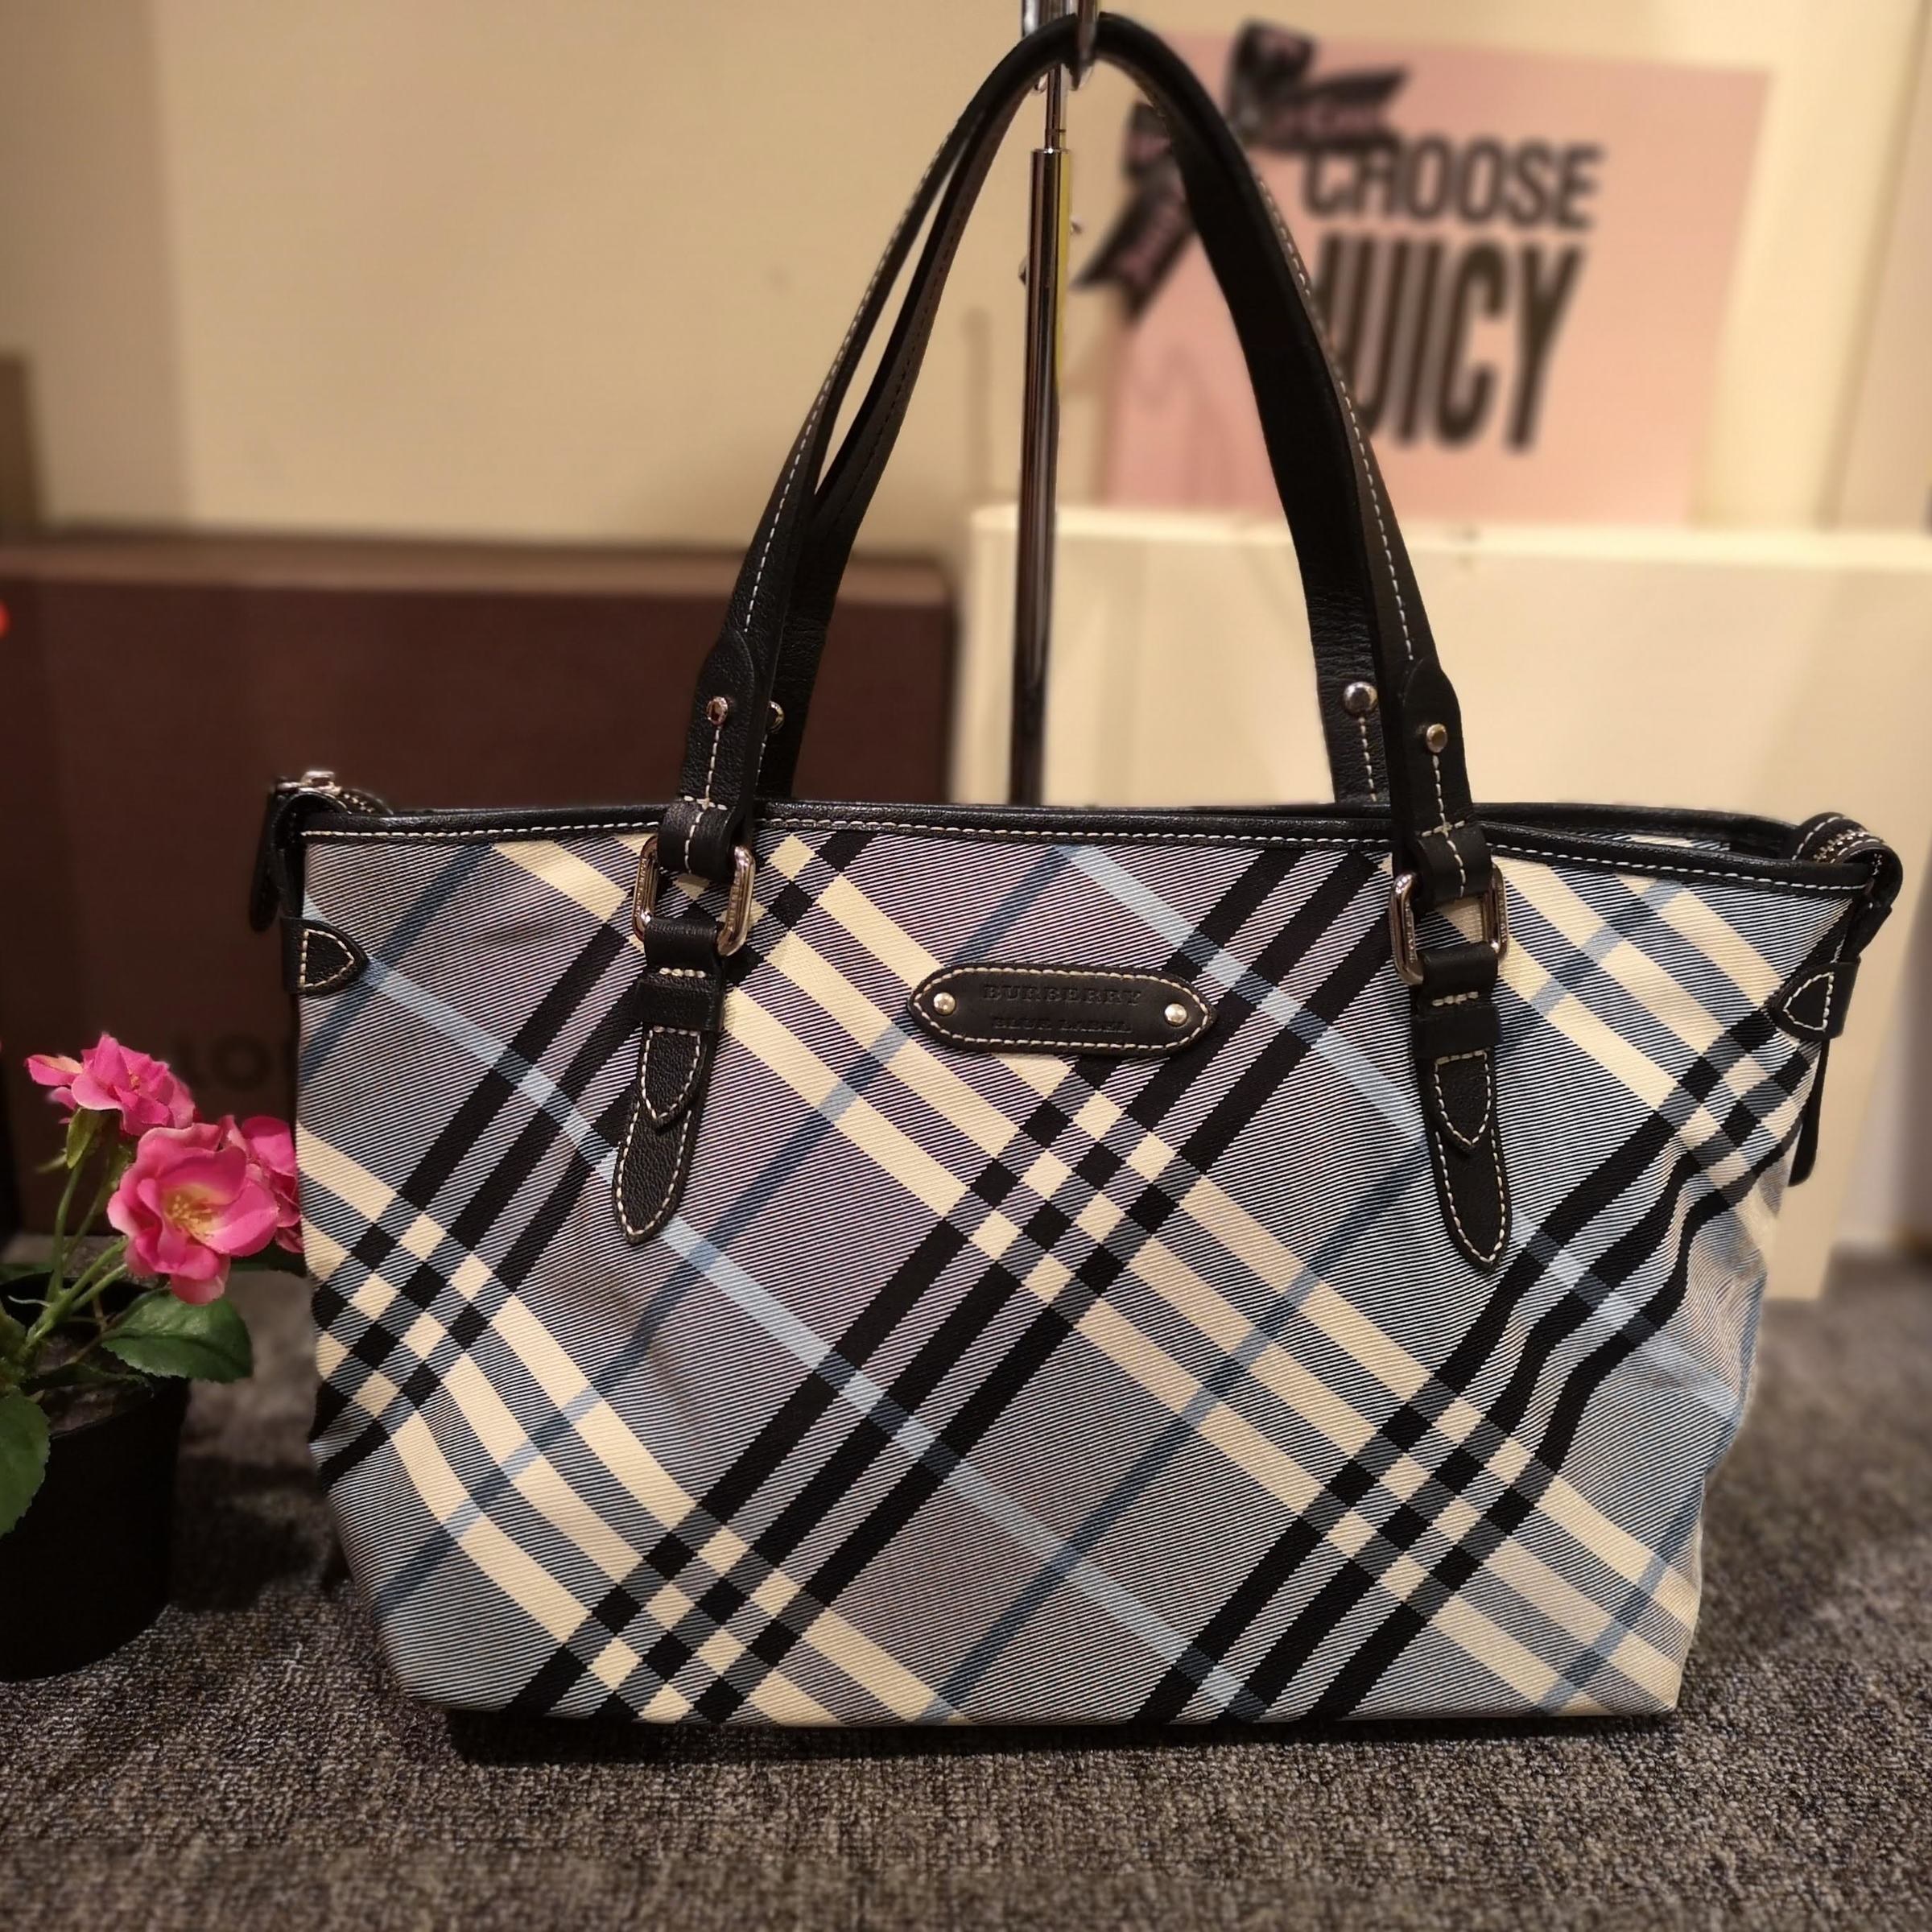 Home › Burberry Blue Label Check Medium Zip Tote. burberrybluelabelziptote  (6).jpg 1f1028642b304